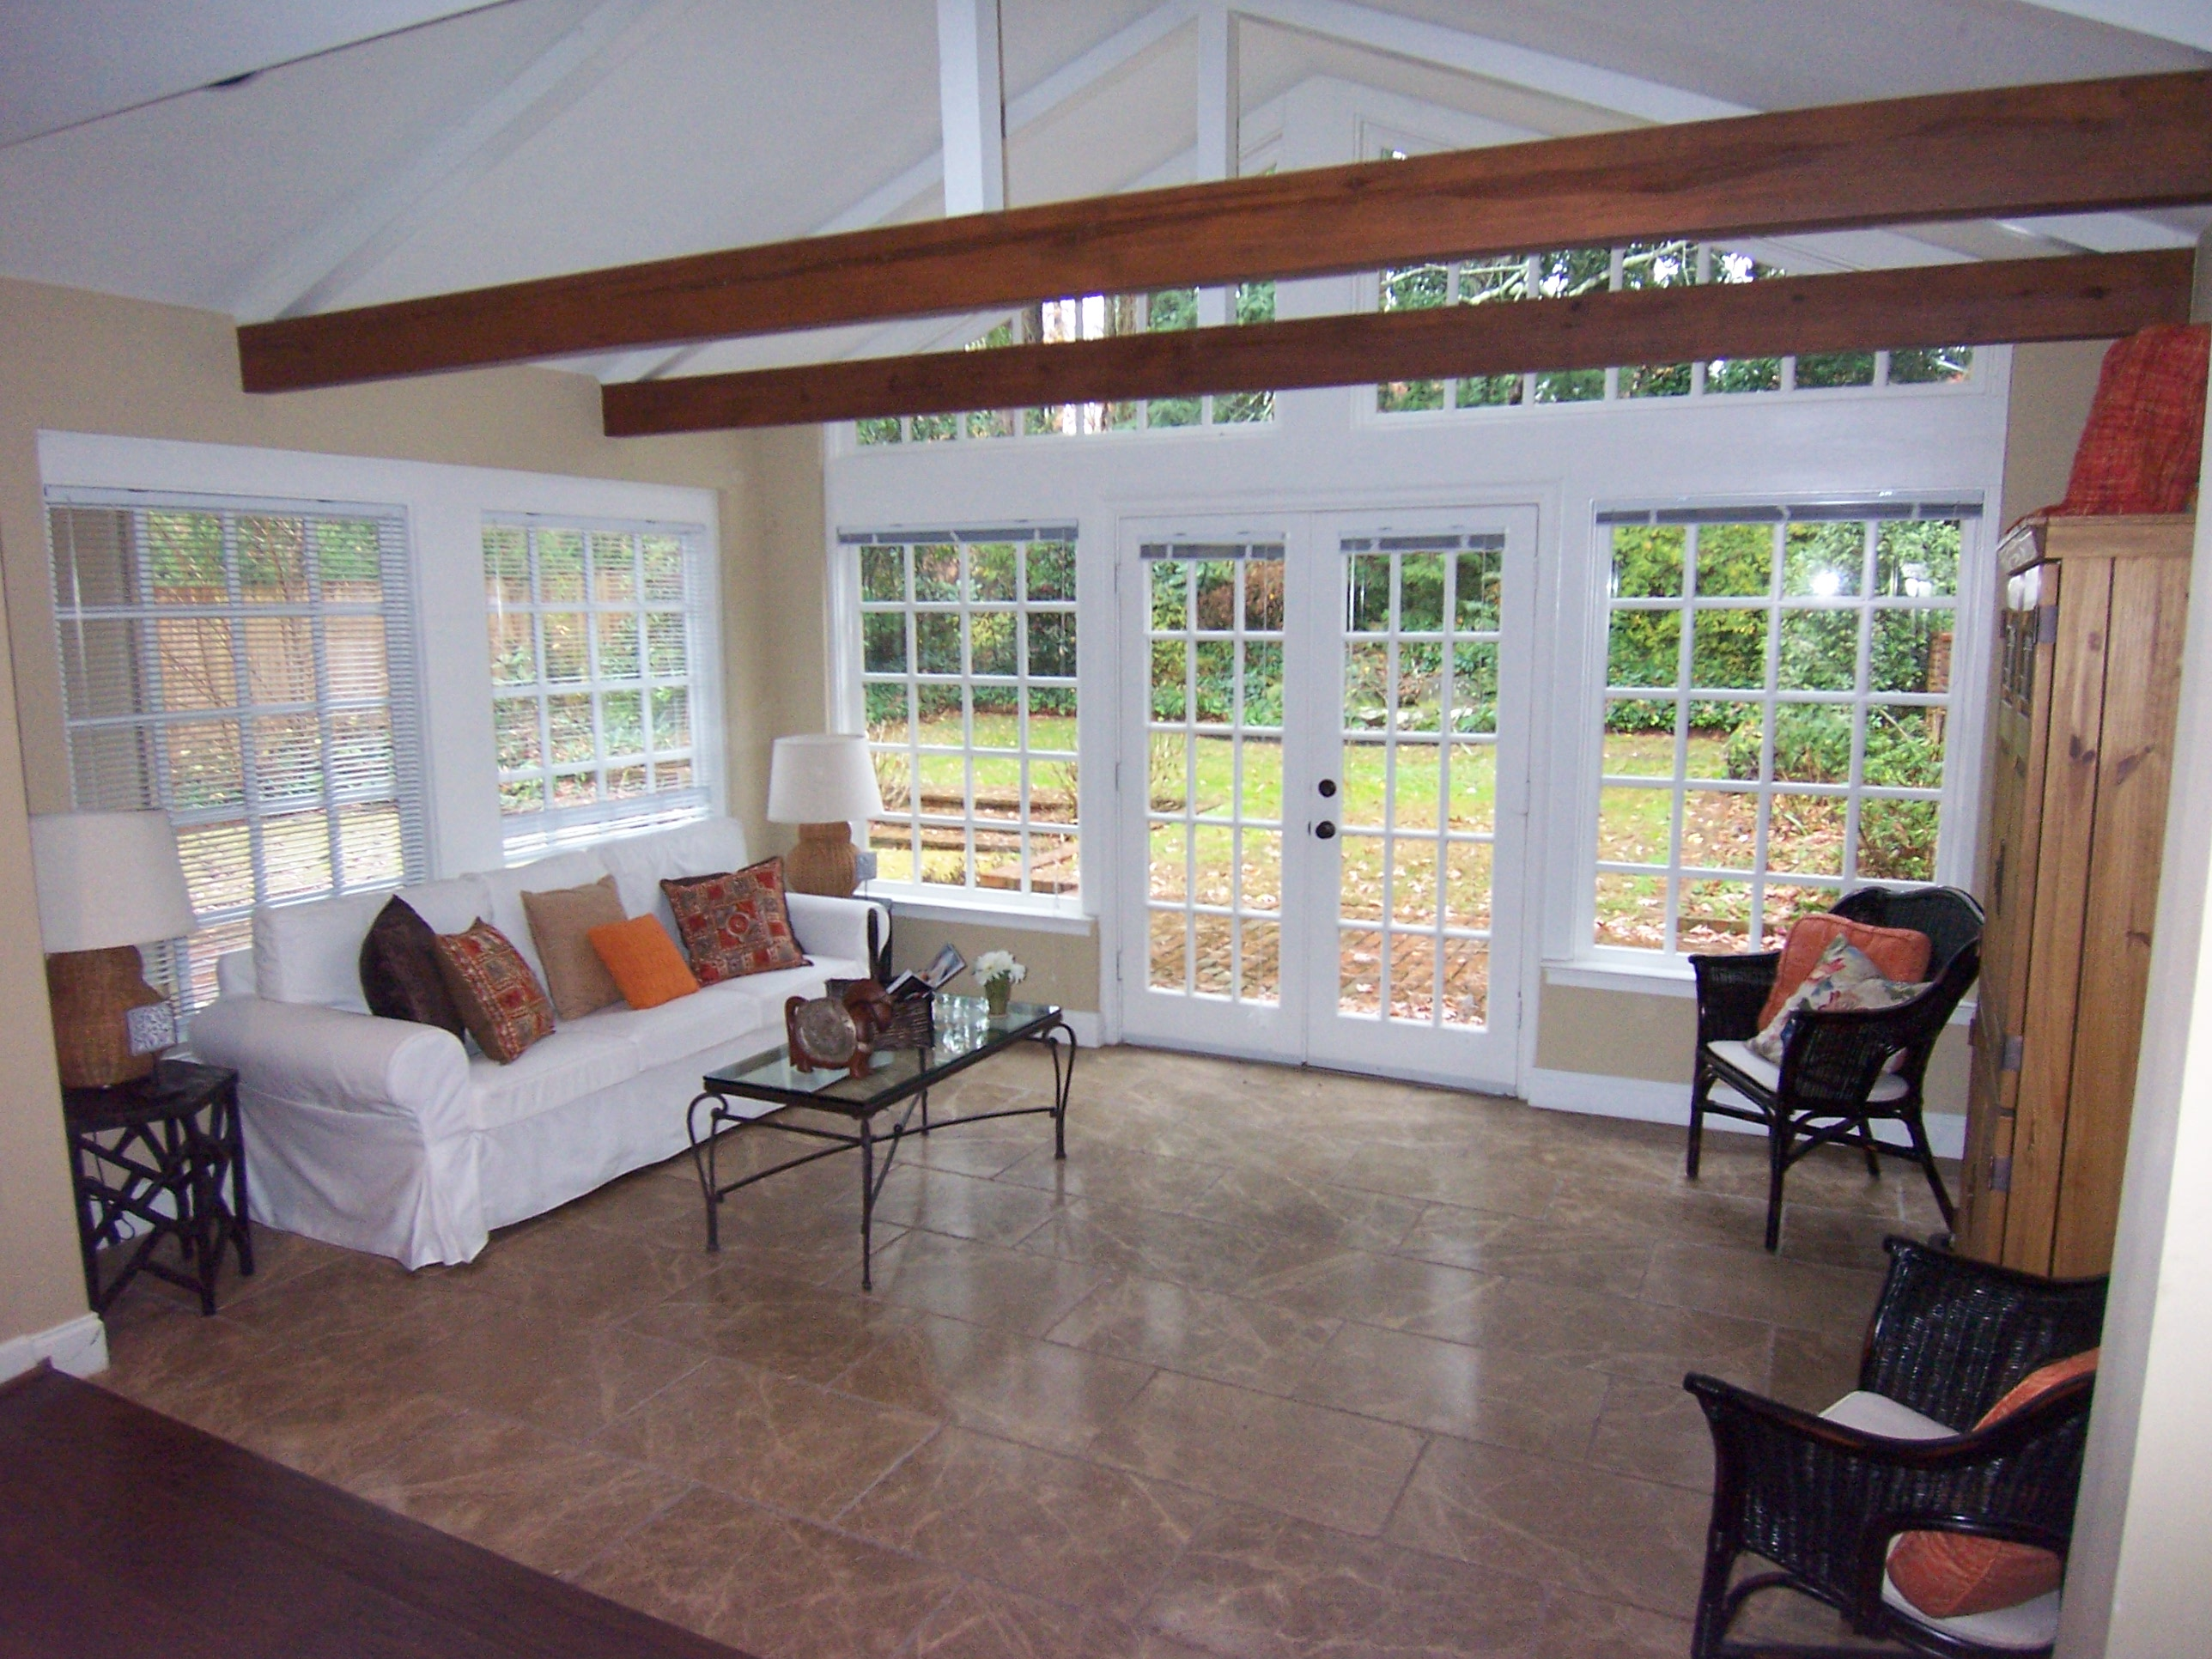 Buckhead-Sunroom-Remodel-Paces-Construction-Atlanta